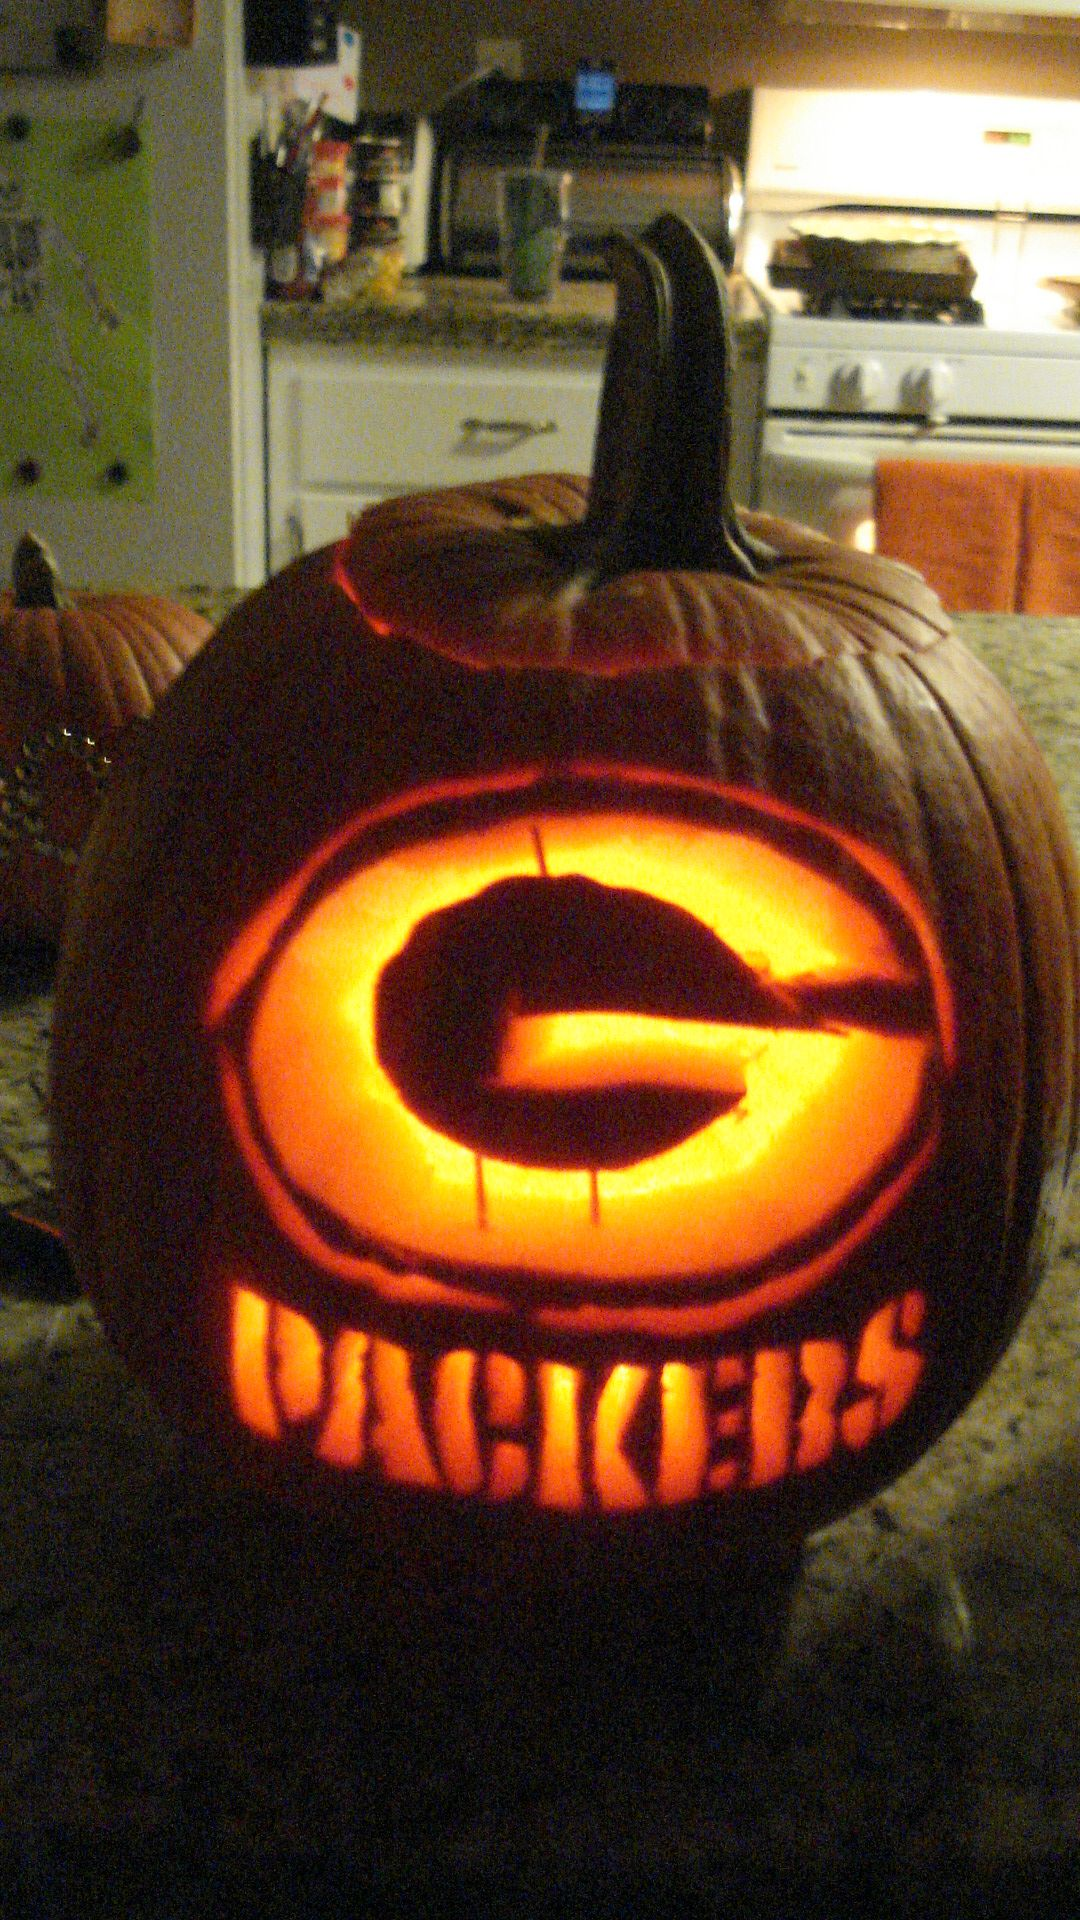 go pack, go! happy halloween green bay, wi! | carved pumpkins